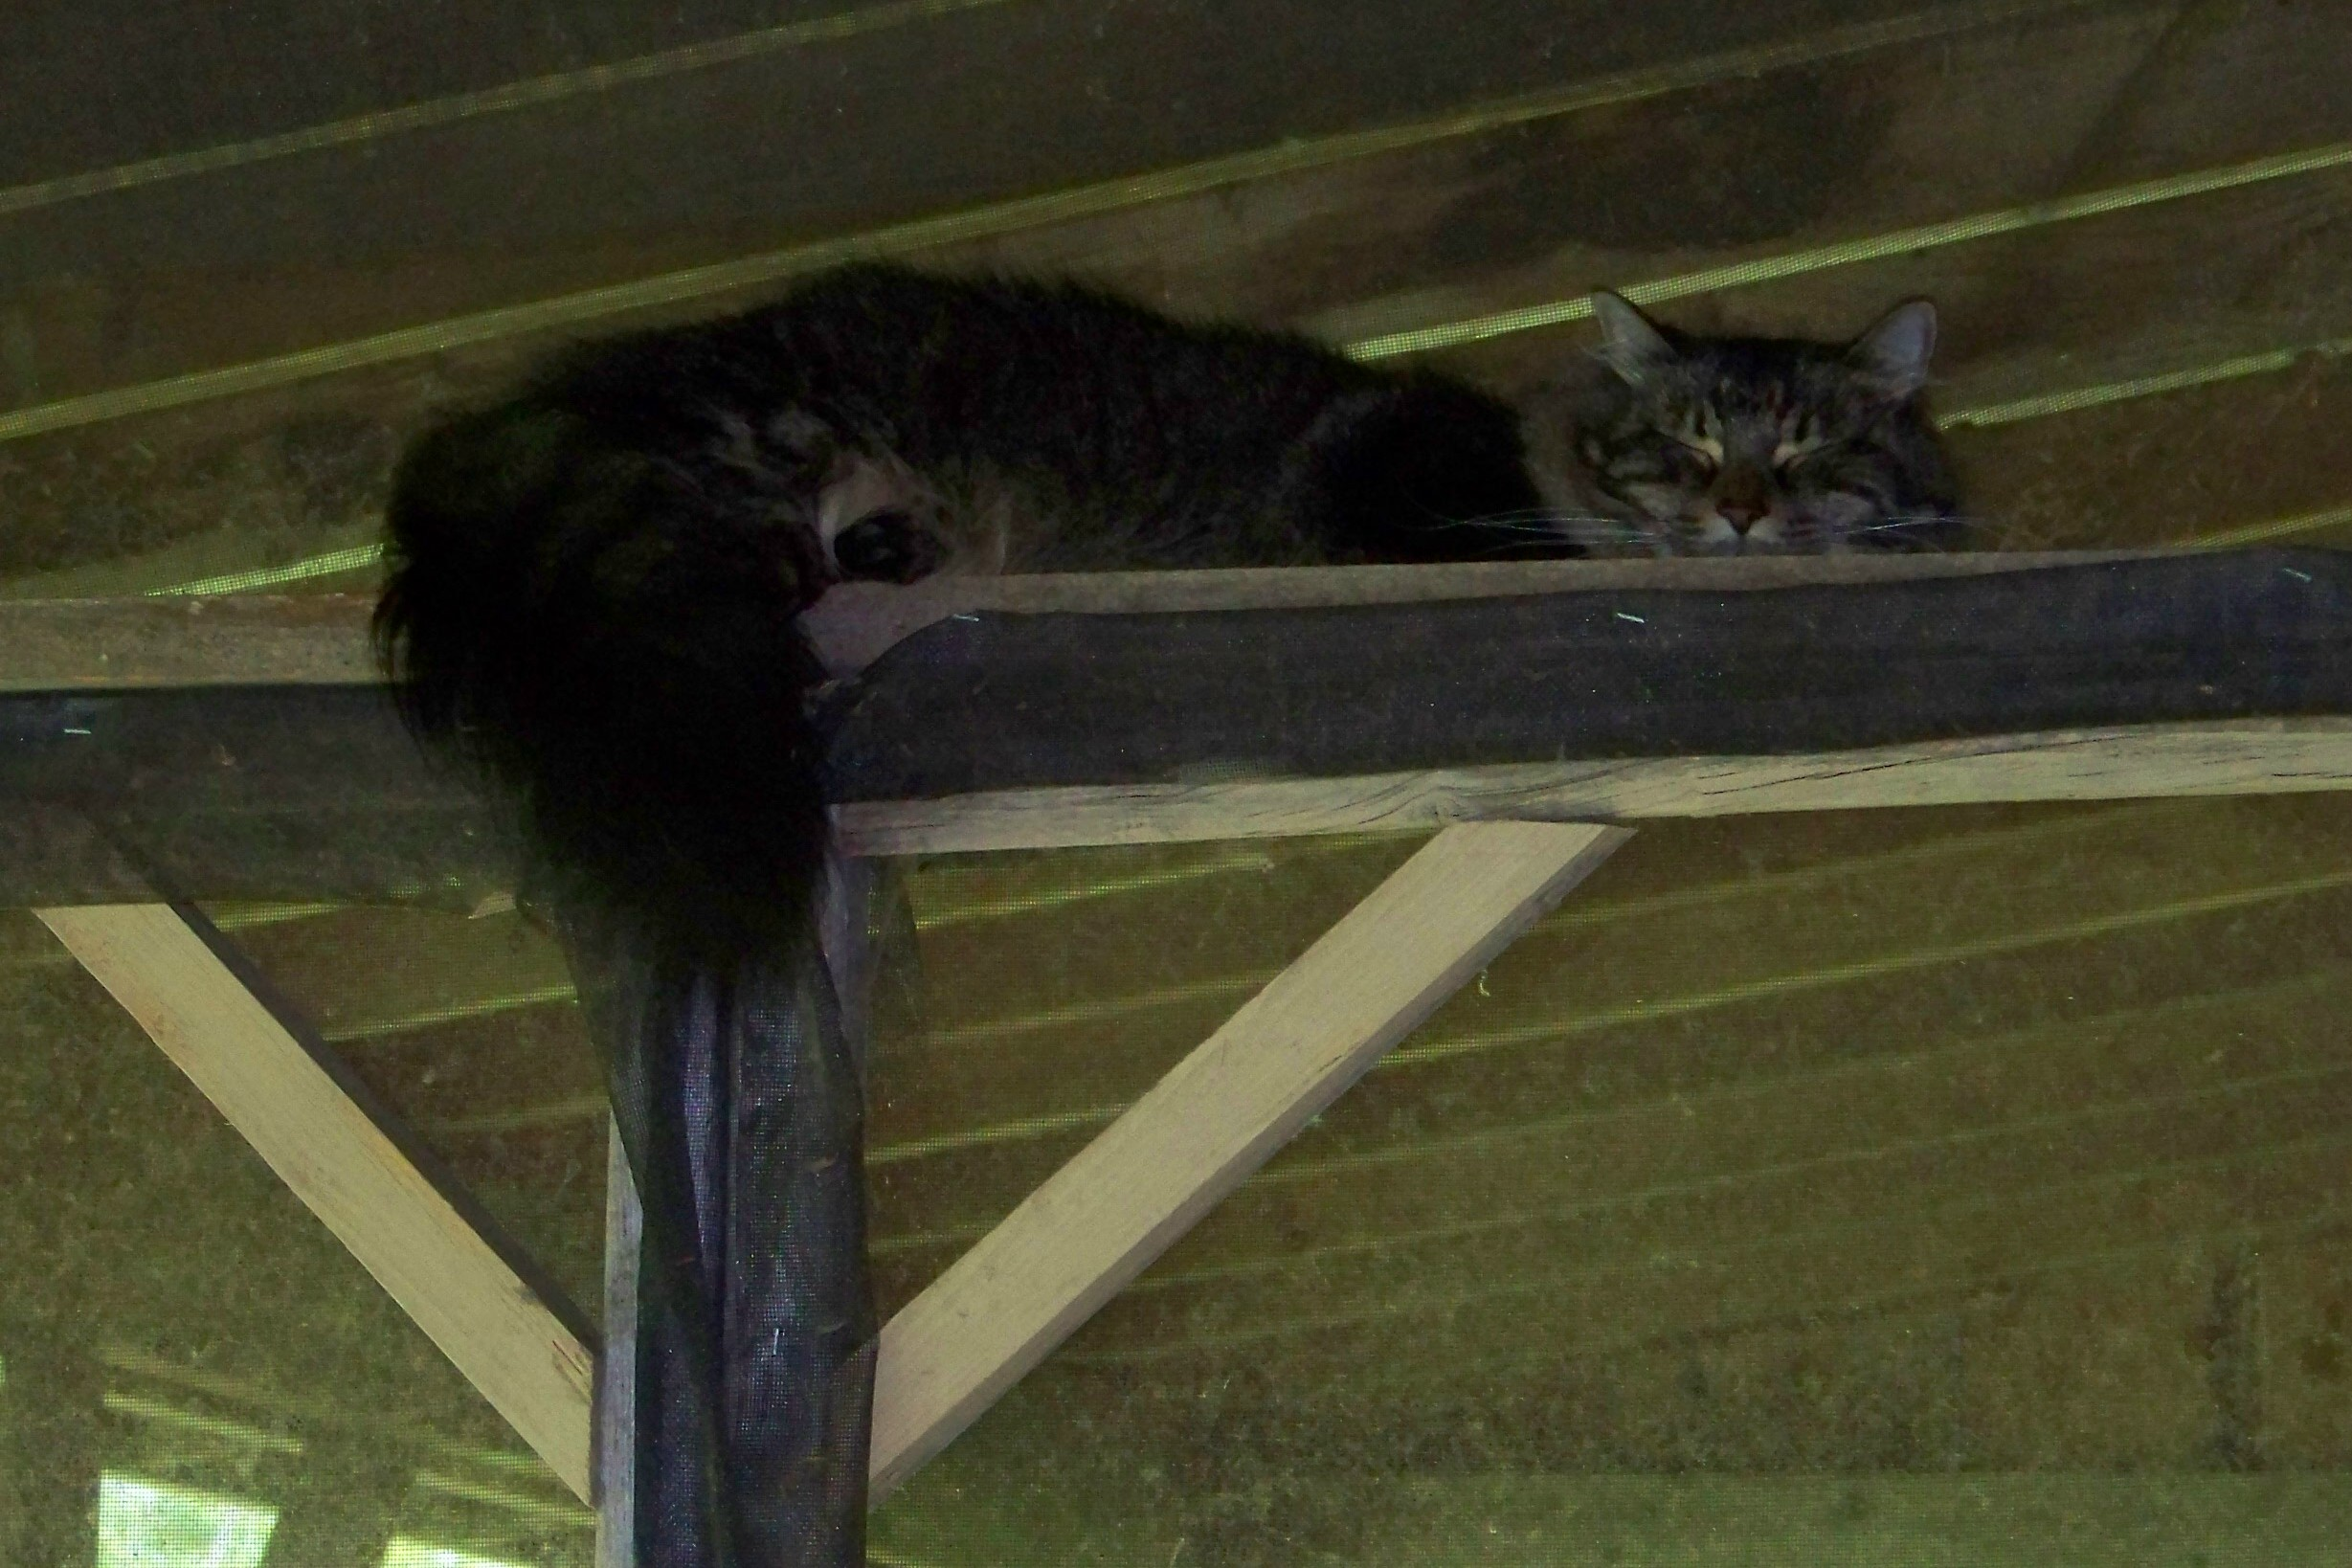 Mikey, snoozing on porch rafter.